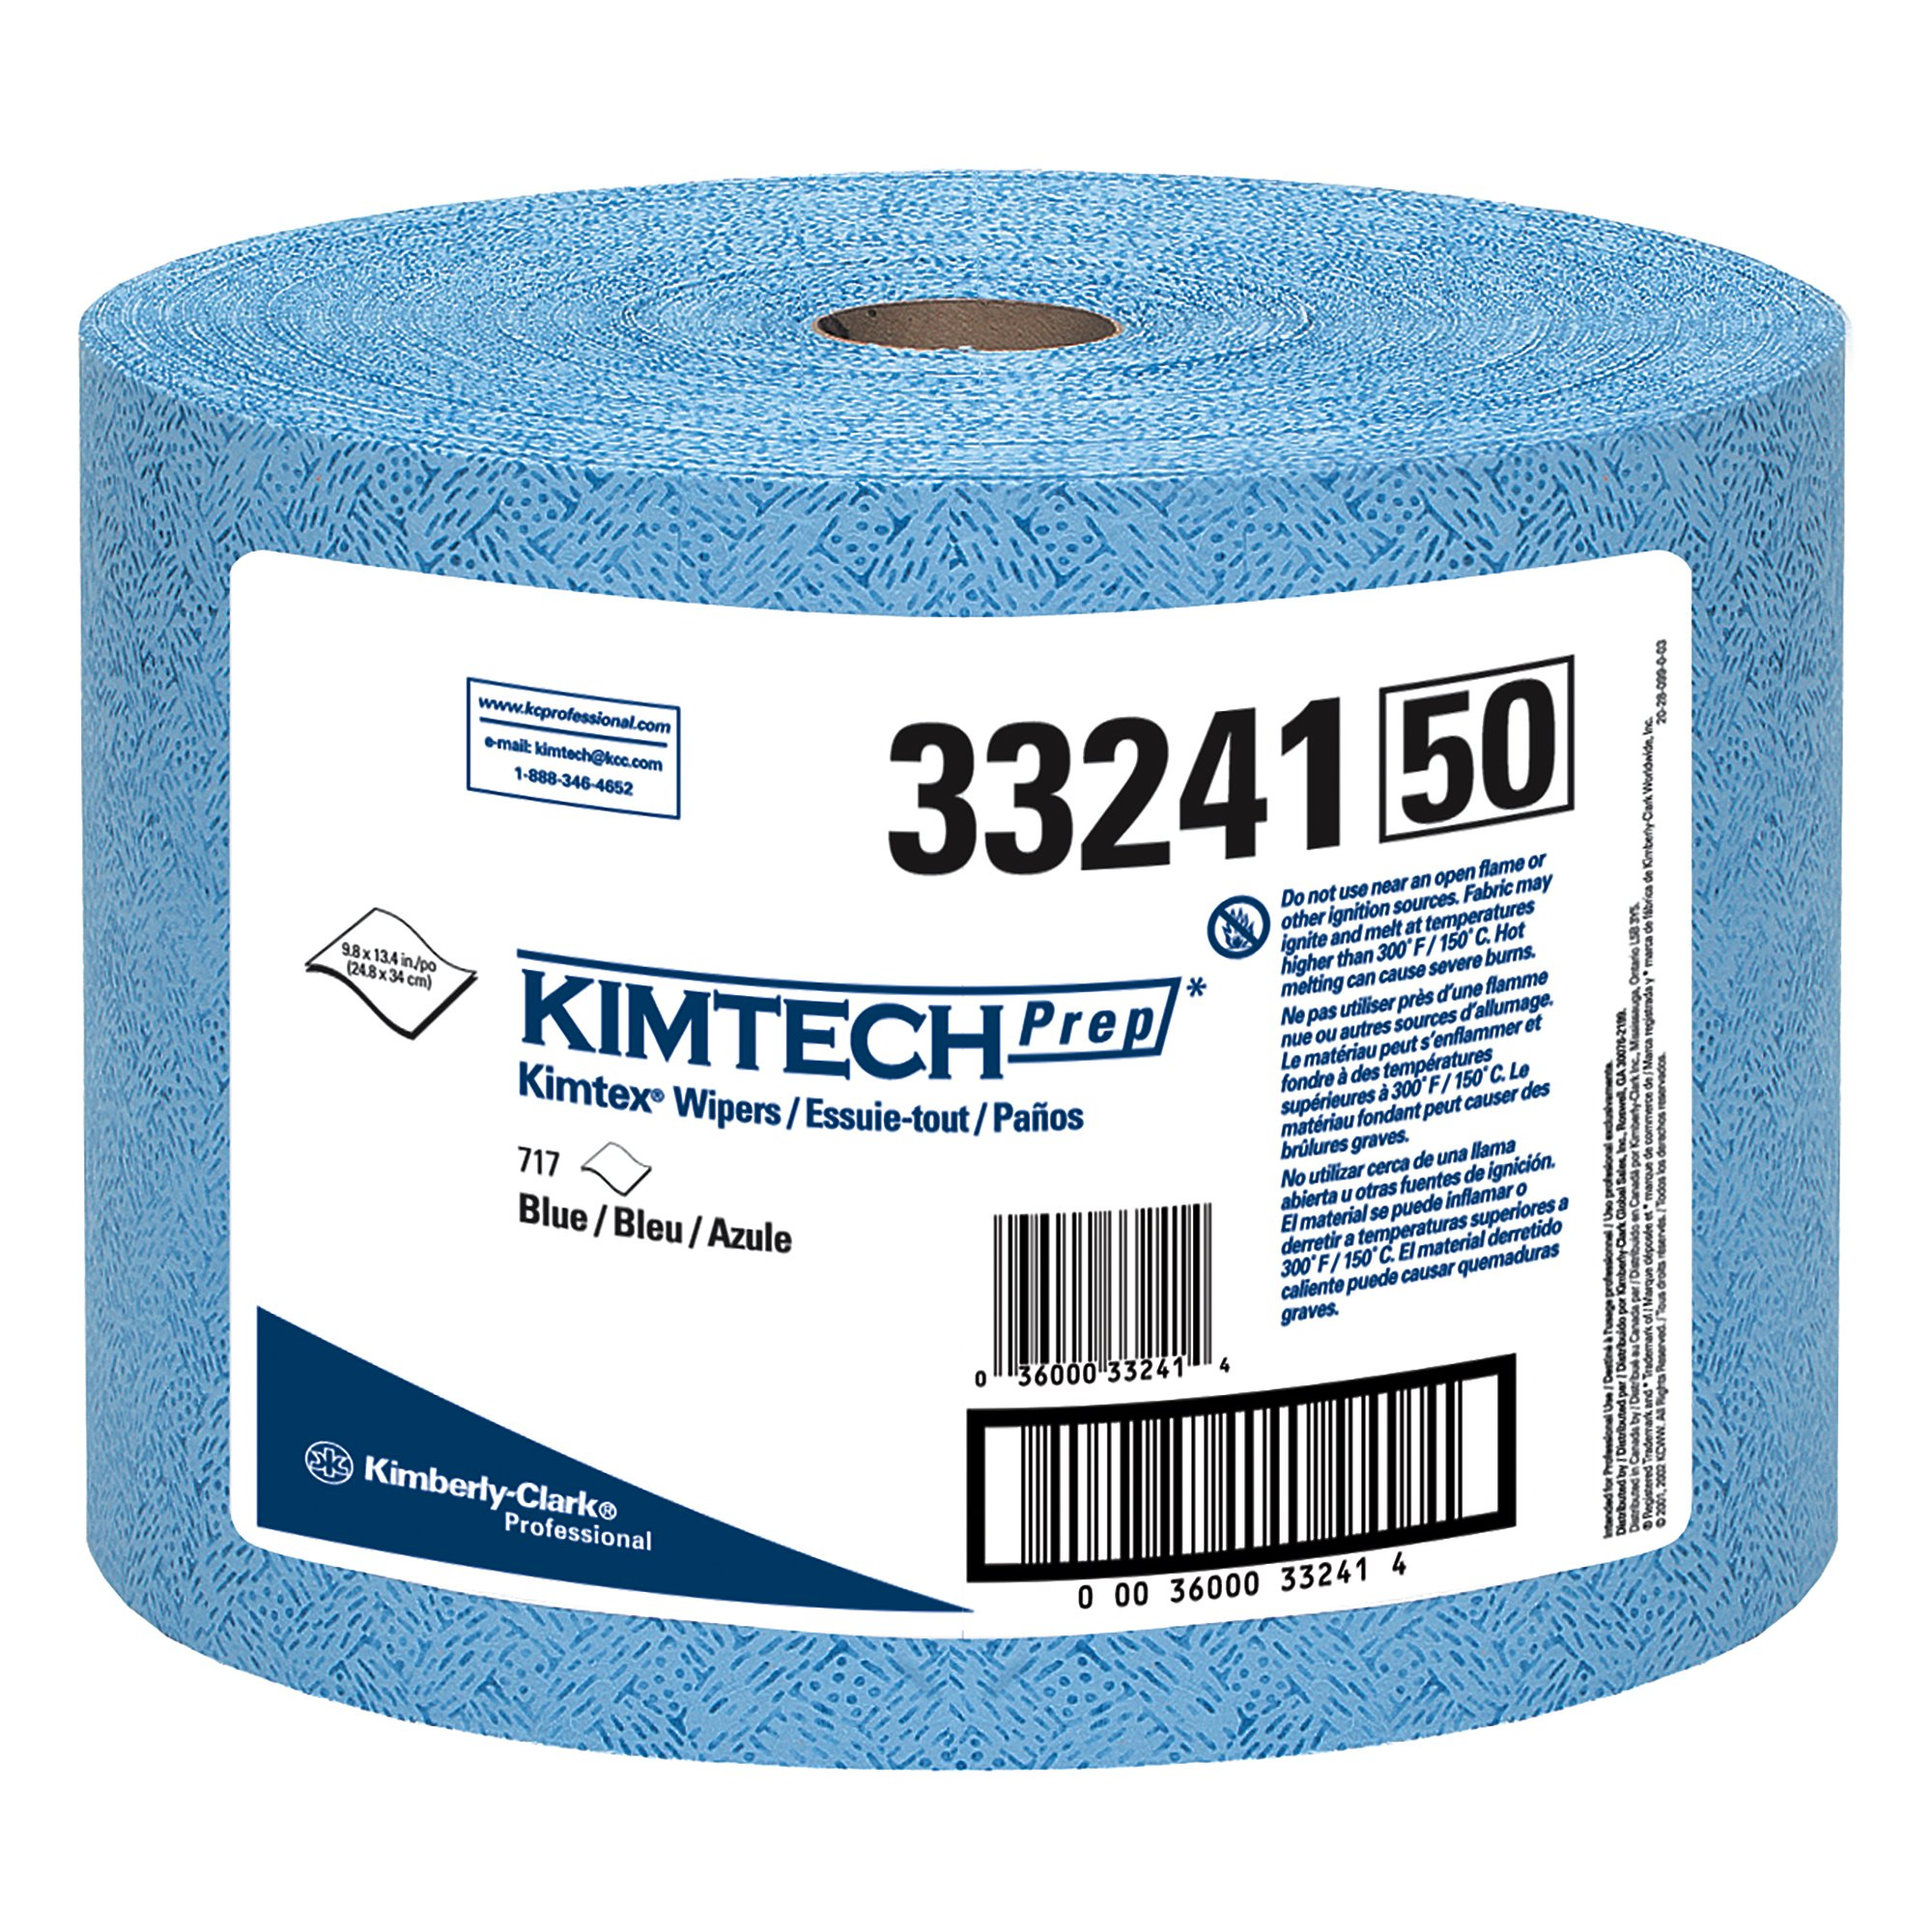 Kimtech 33241 KIMTEX Wipers, Jumbo Roll, 9 3/5 x 13 2/5, Blue (Roll of 717)